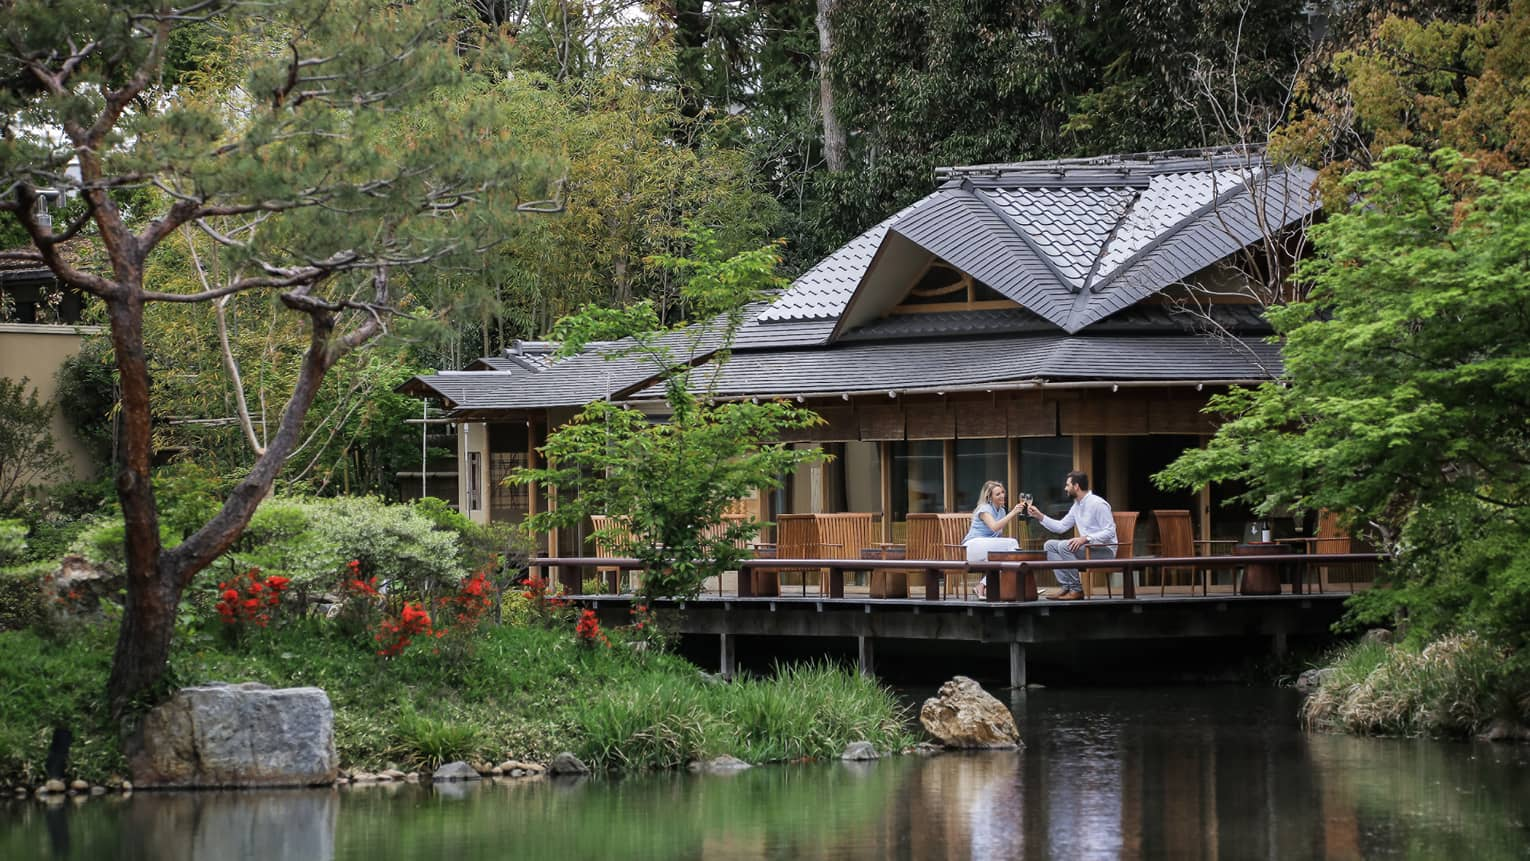 View across pond to restaurant patio where couple toasts with wine glasses